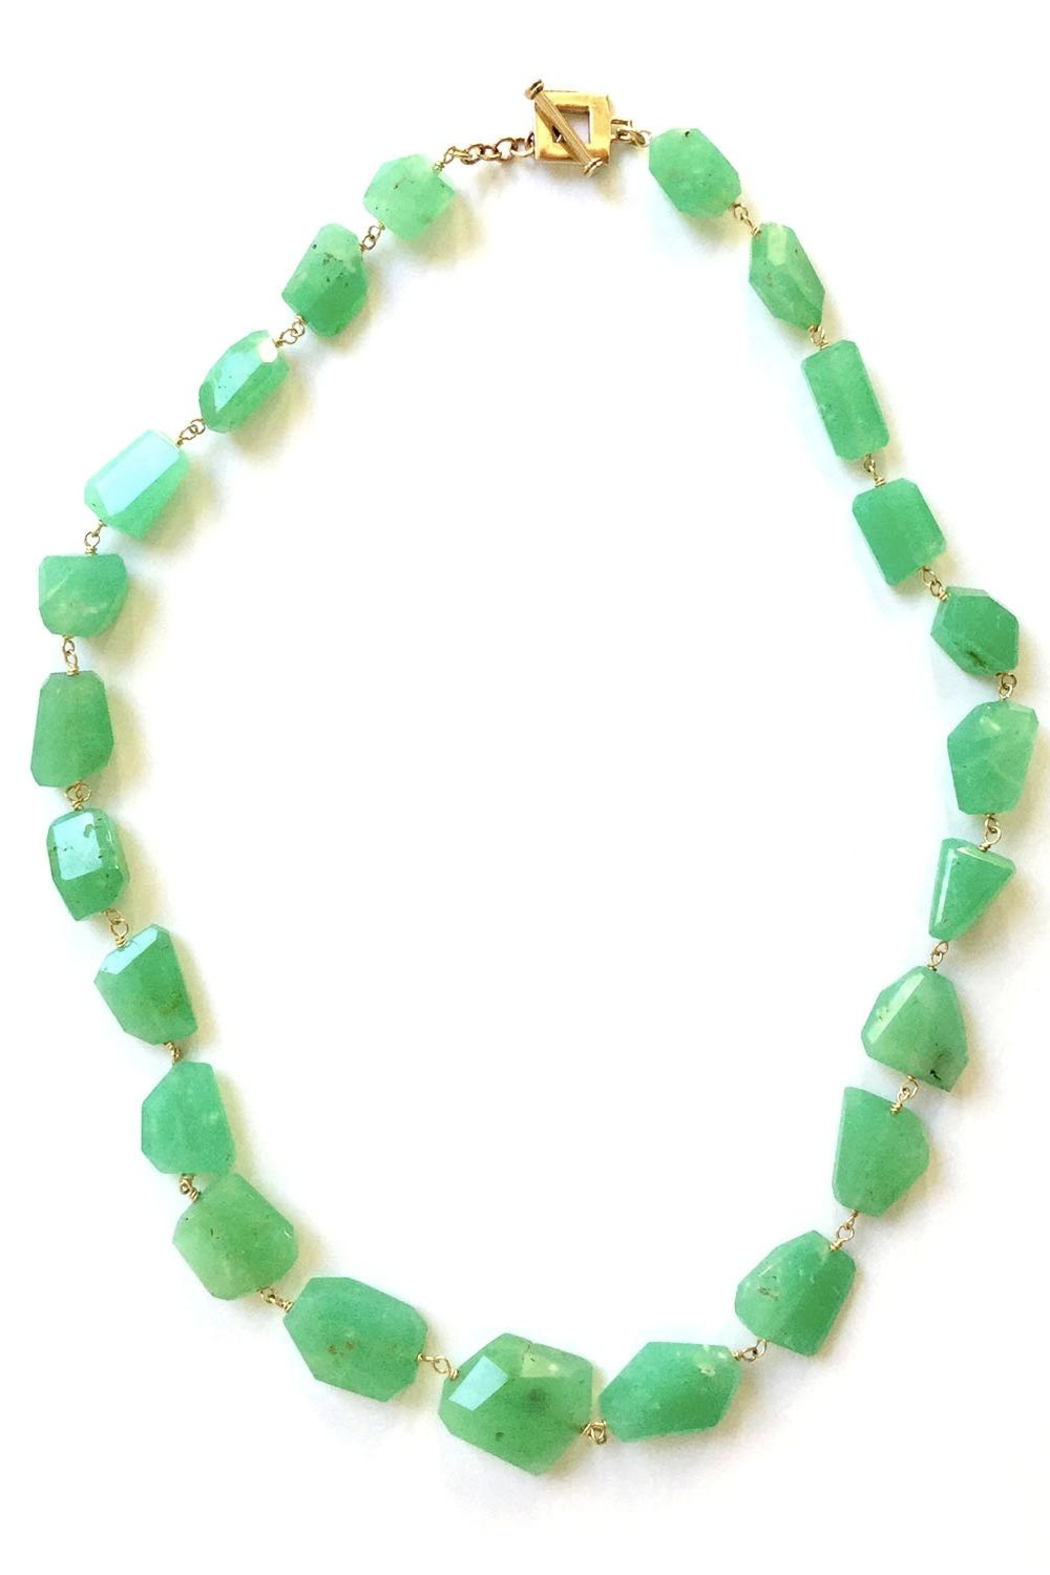 crescent moon products necklace fullsizeoutput chrysoprase ssmdesign